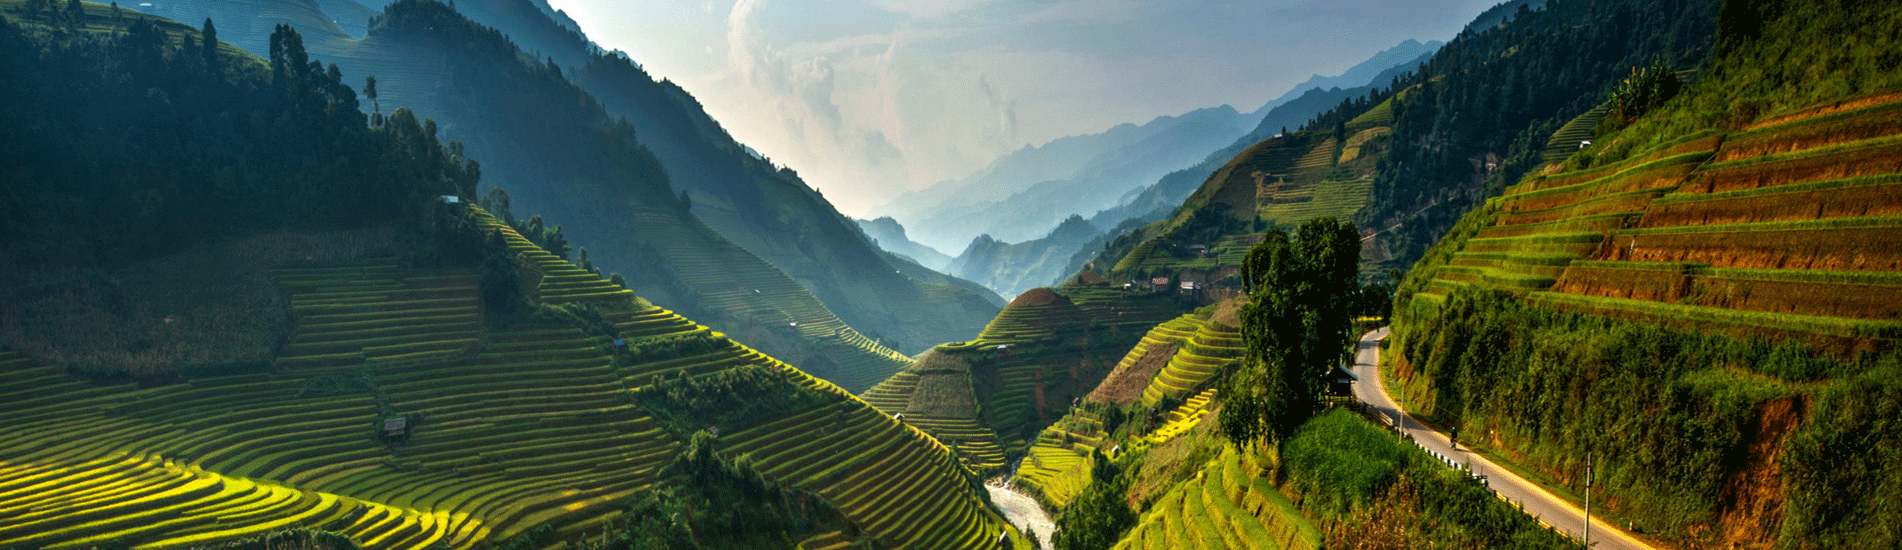 Rice fields in terraces in Vietnam